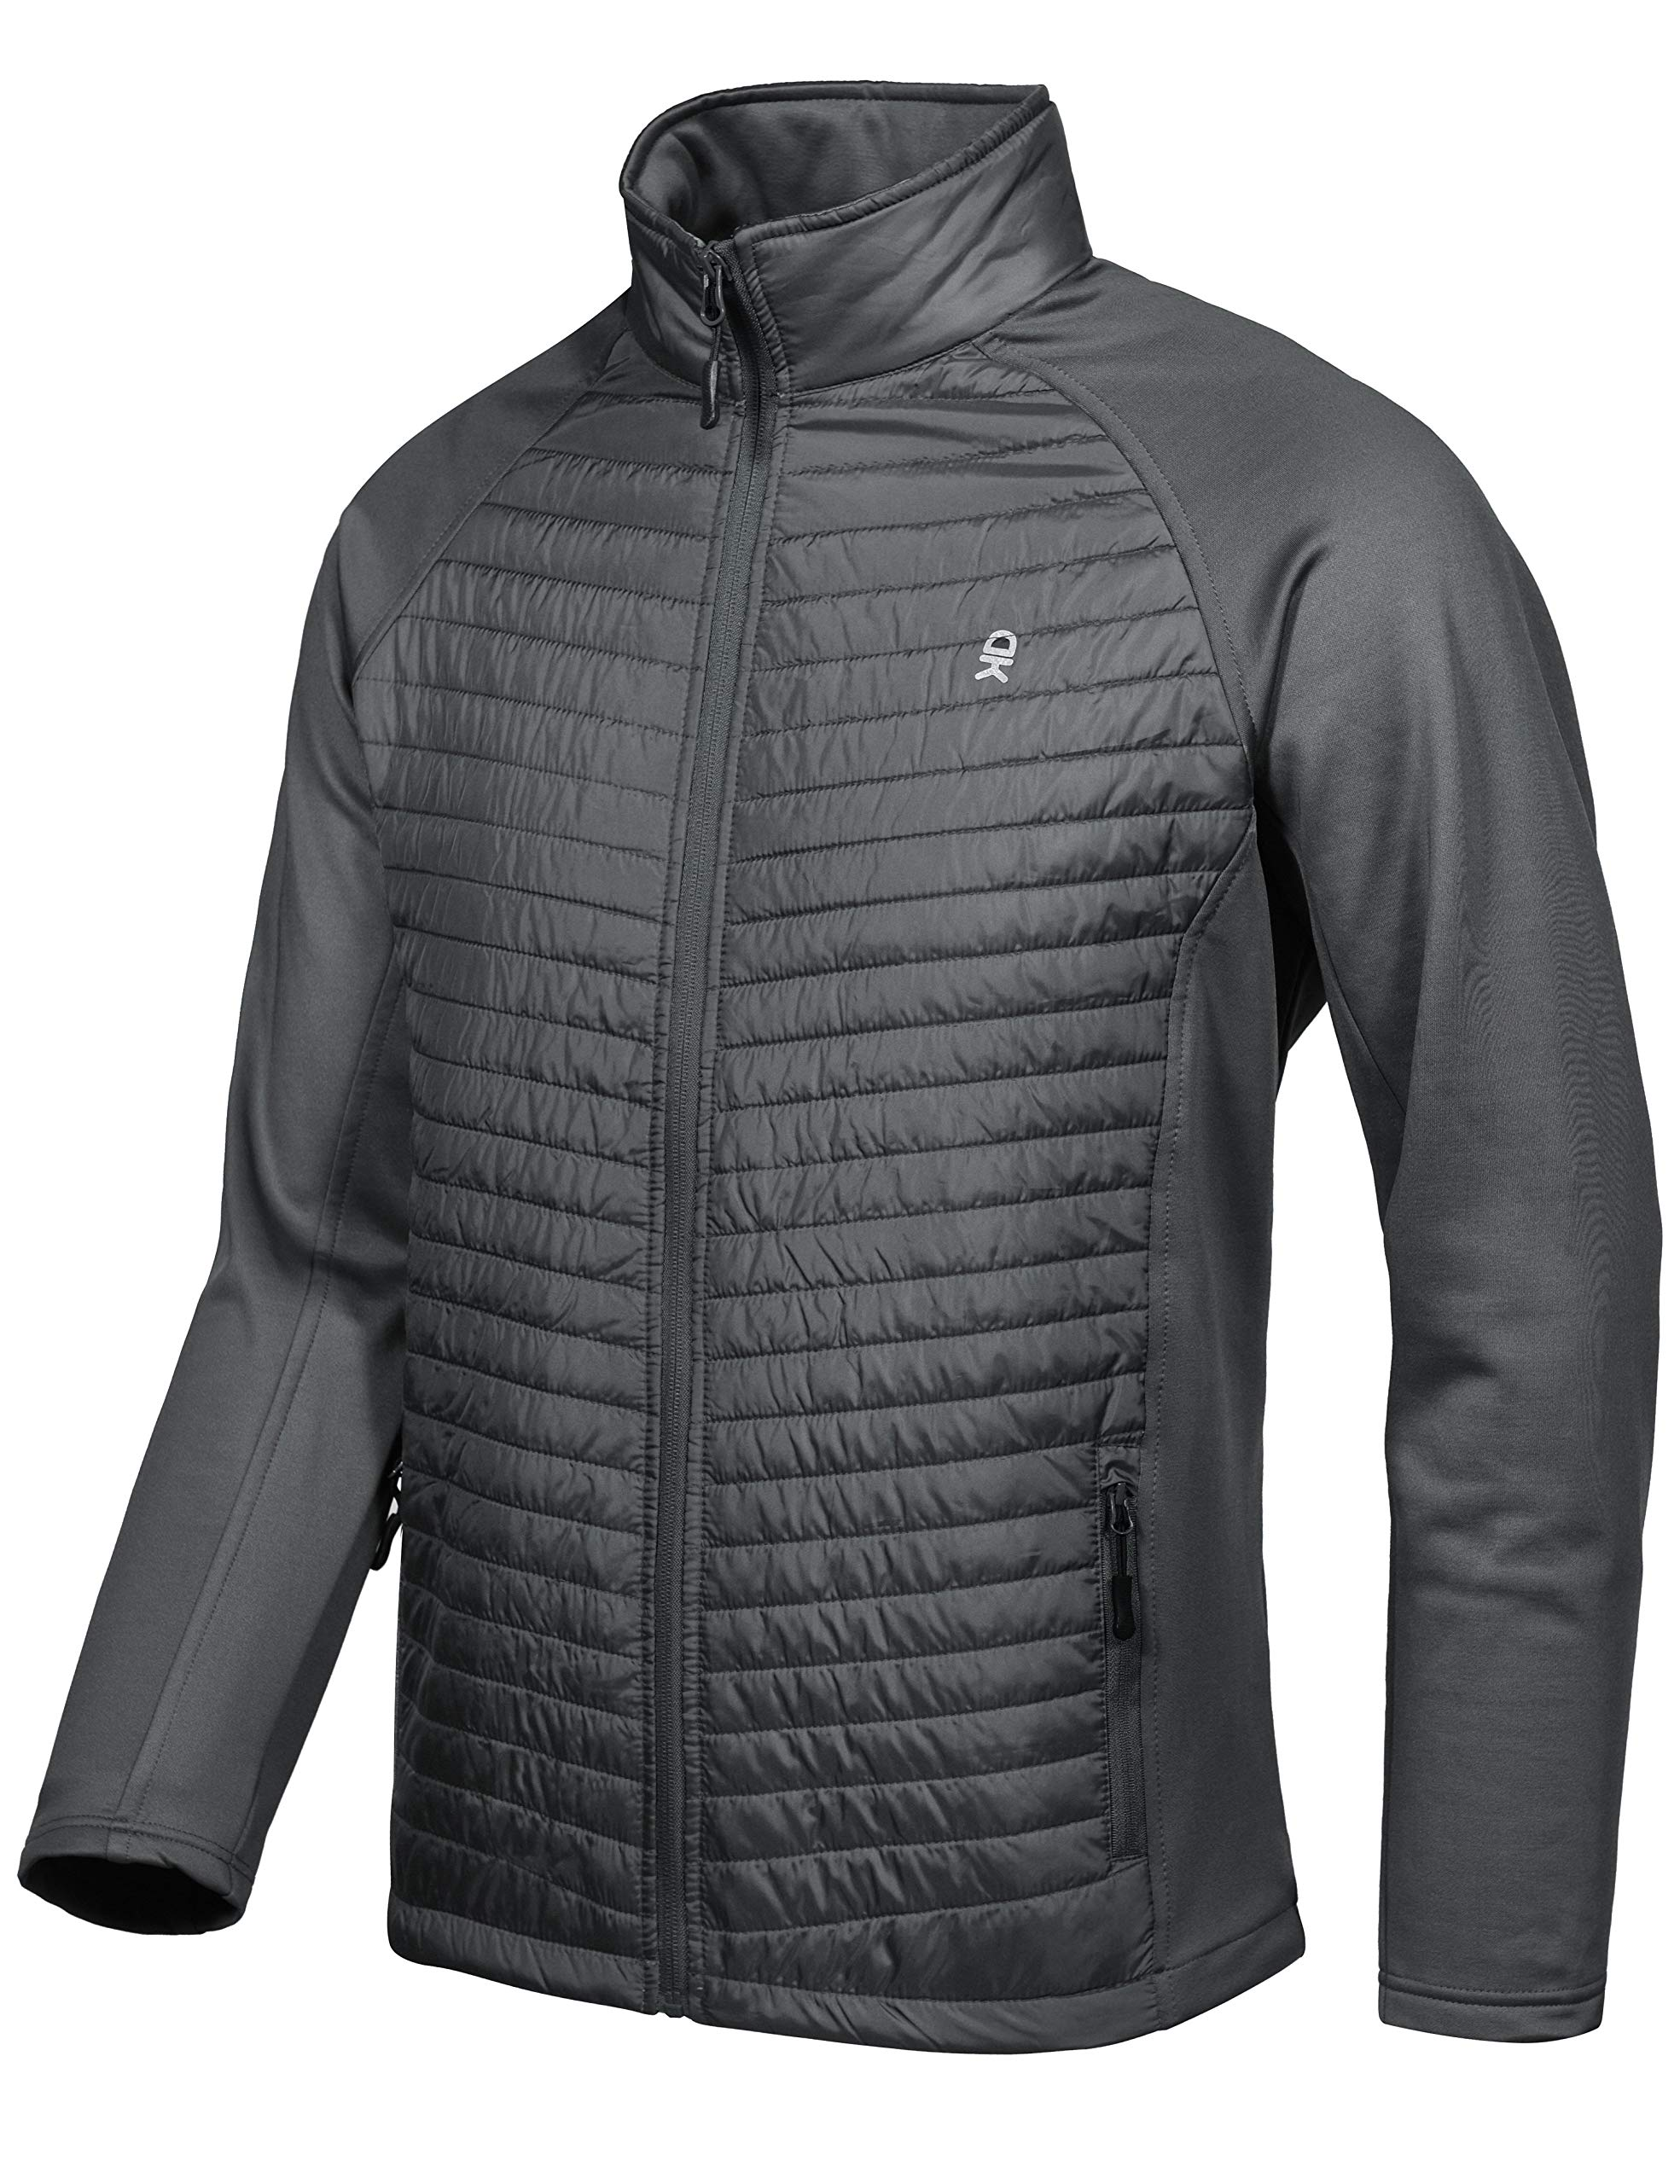 Little Donkey Andy Men's Insulated Jacket, Thermal Hiking Hybrid Jacket Gray Size L by Little Donkey Andy